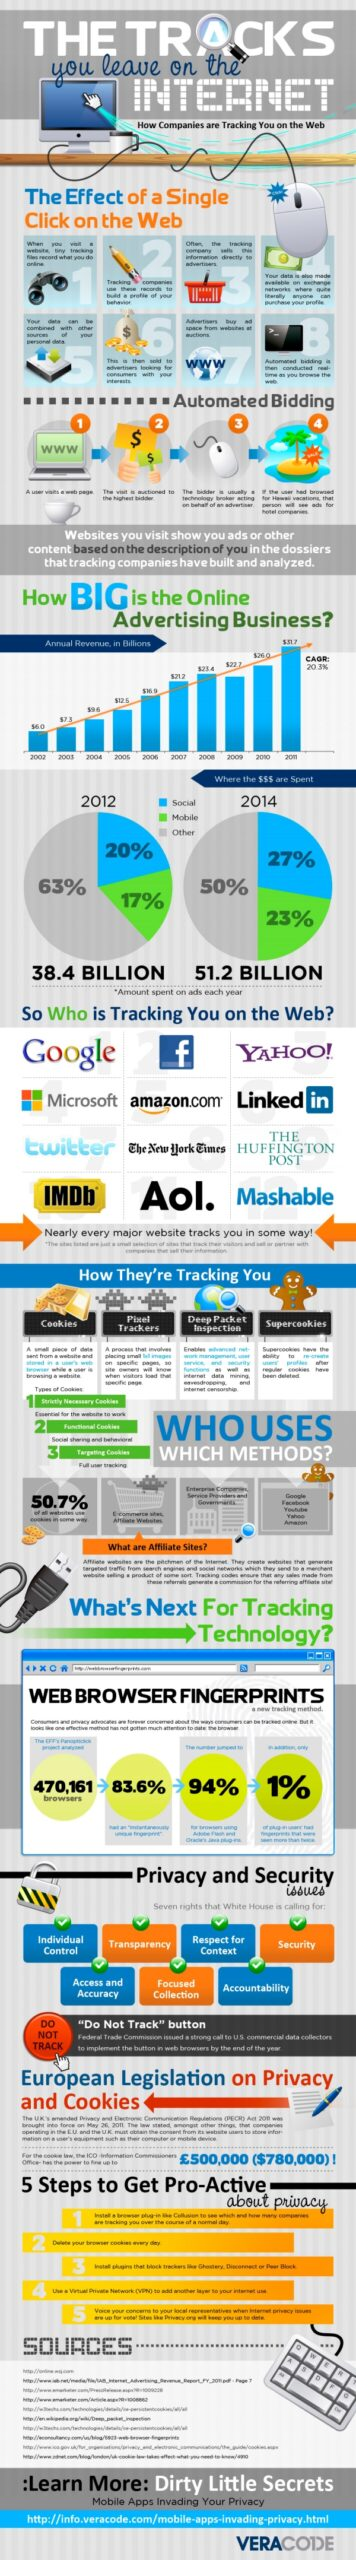 Are you being tracked online